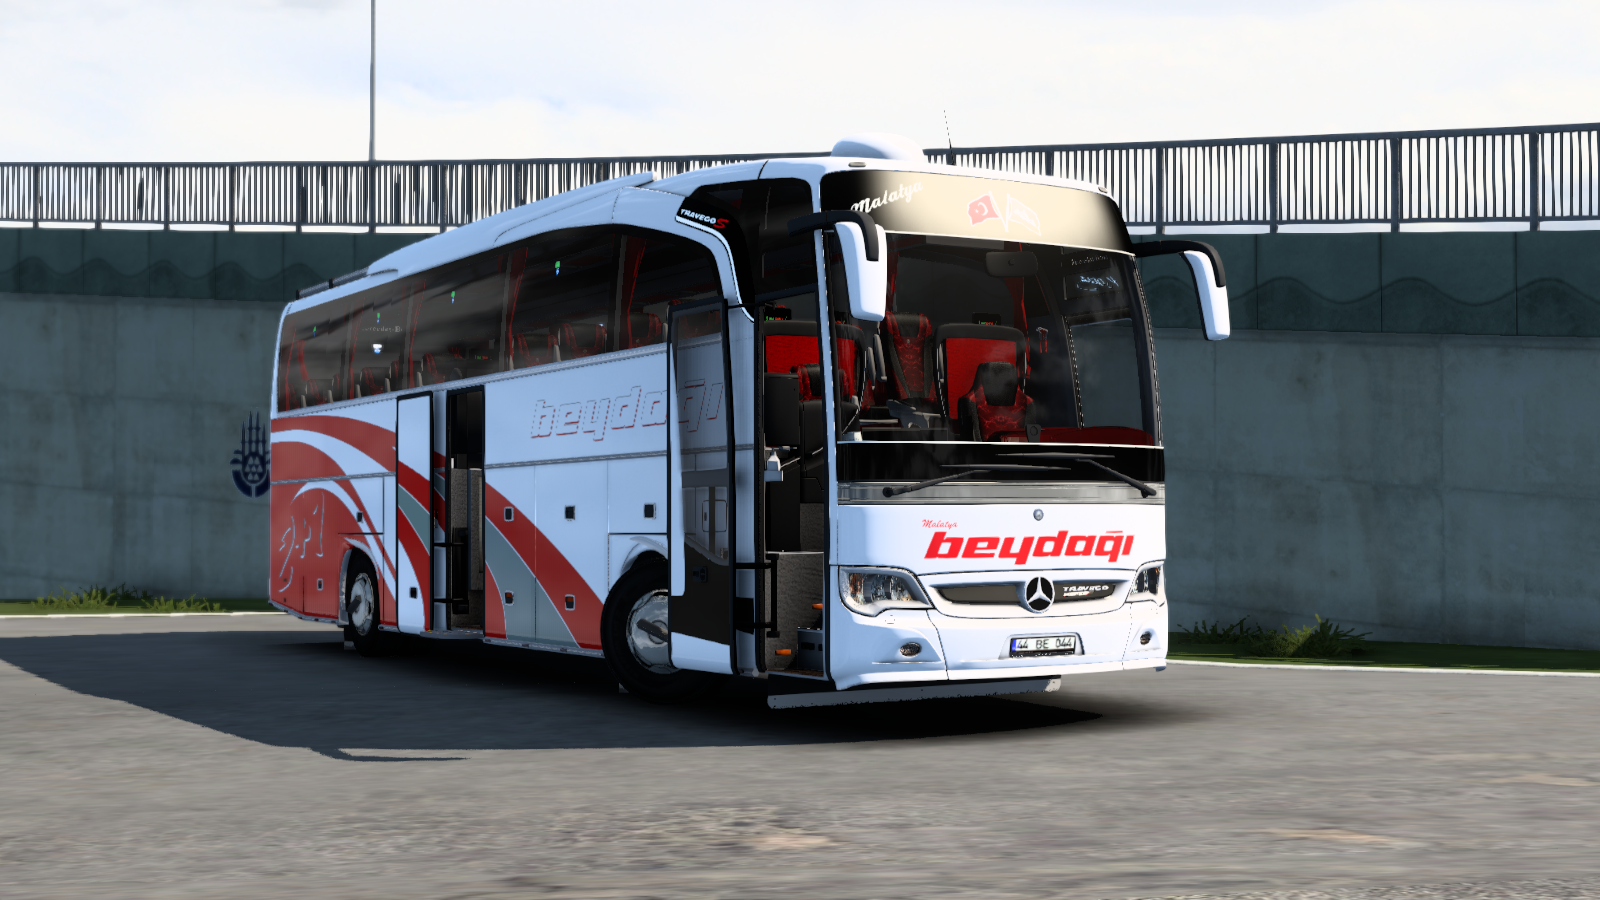 ets2_20210926_220948_00.png